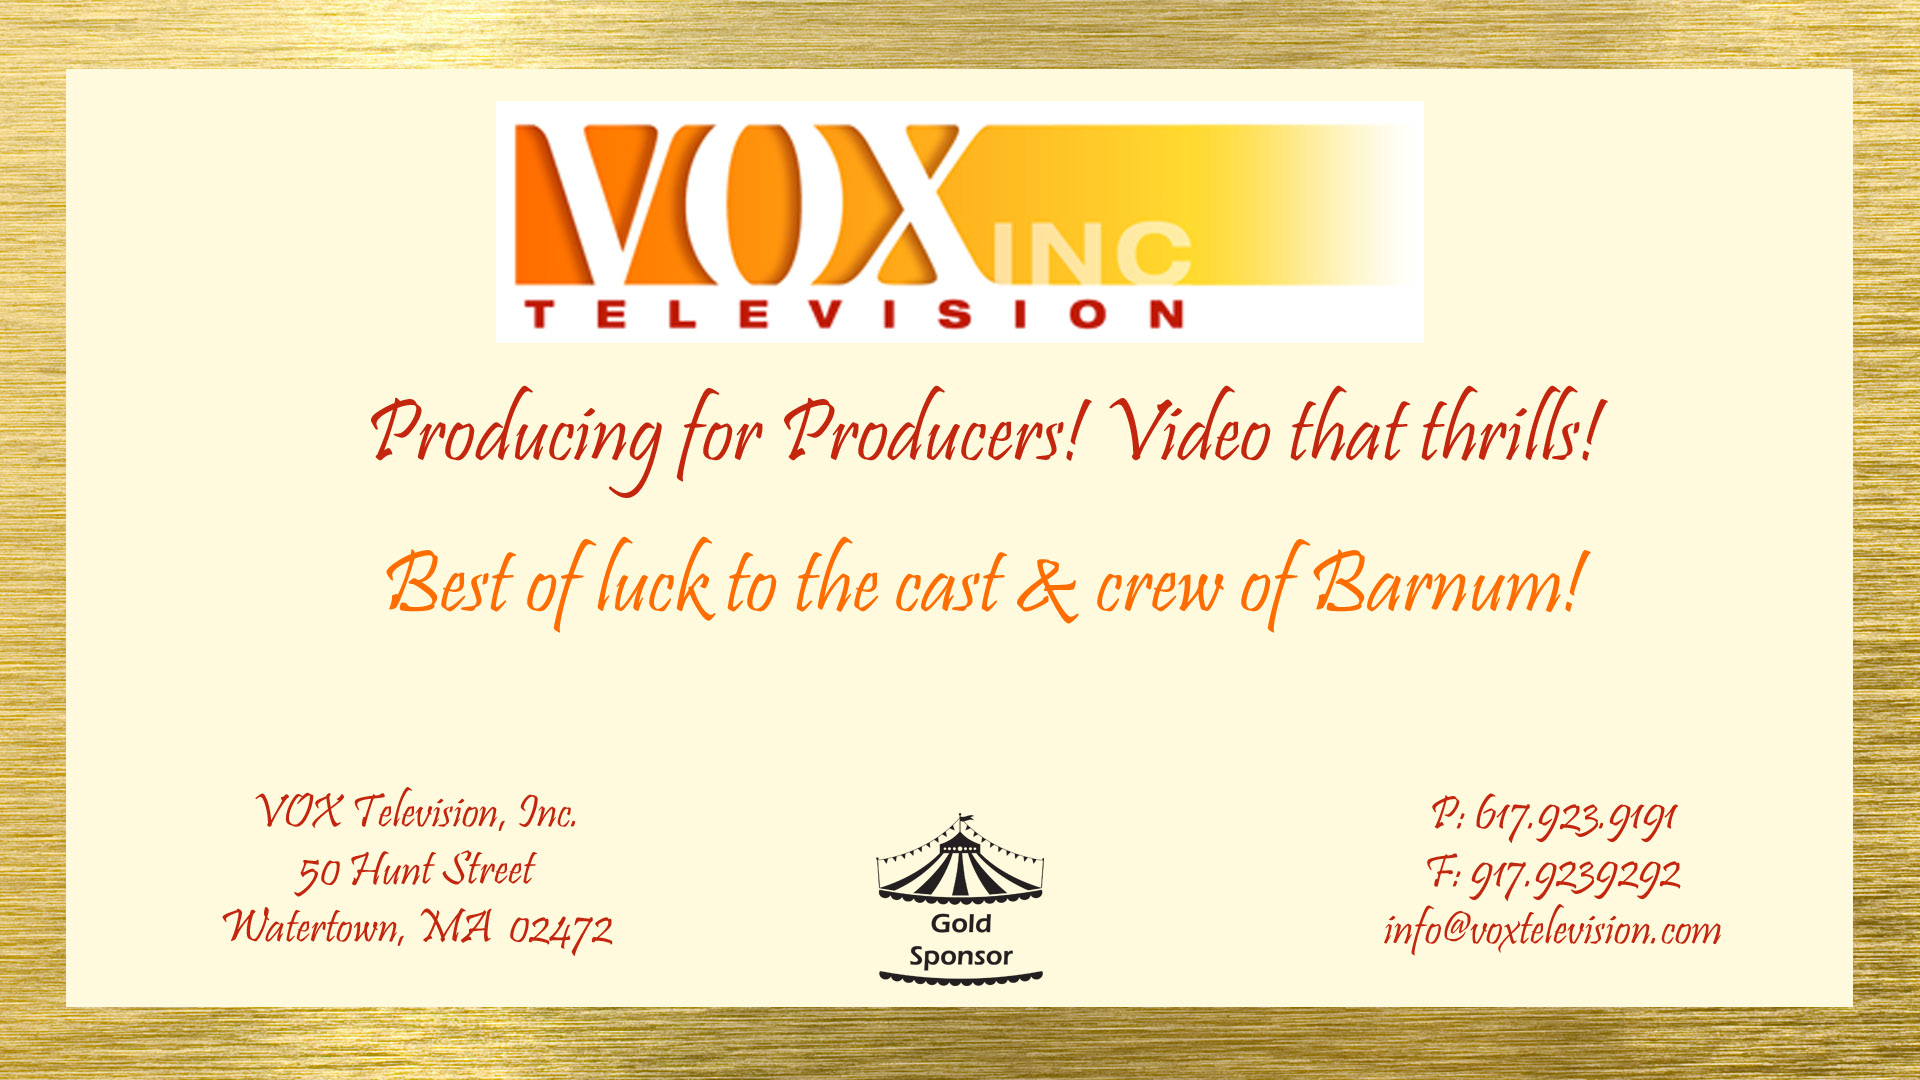 Click link for more info on VOX